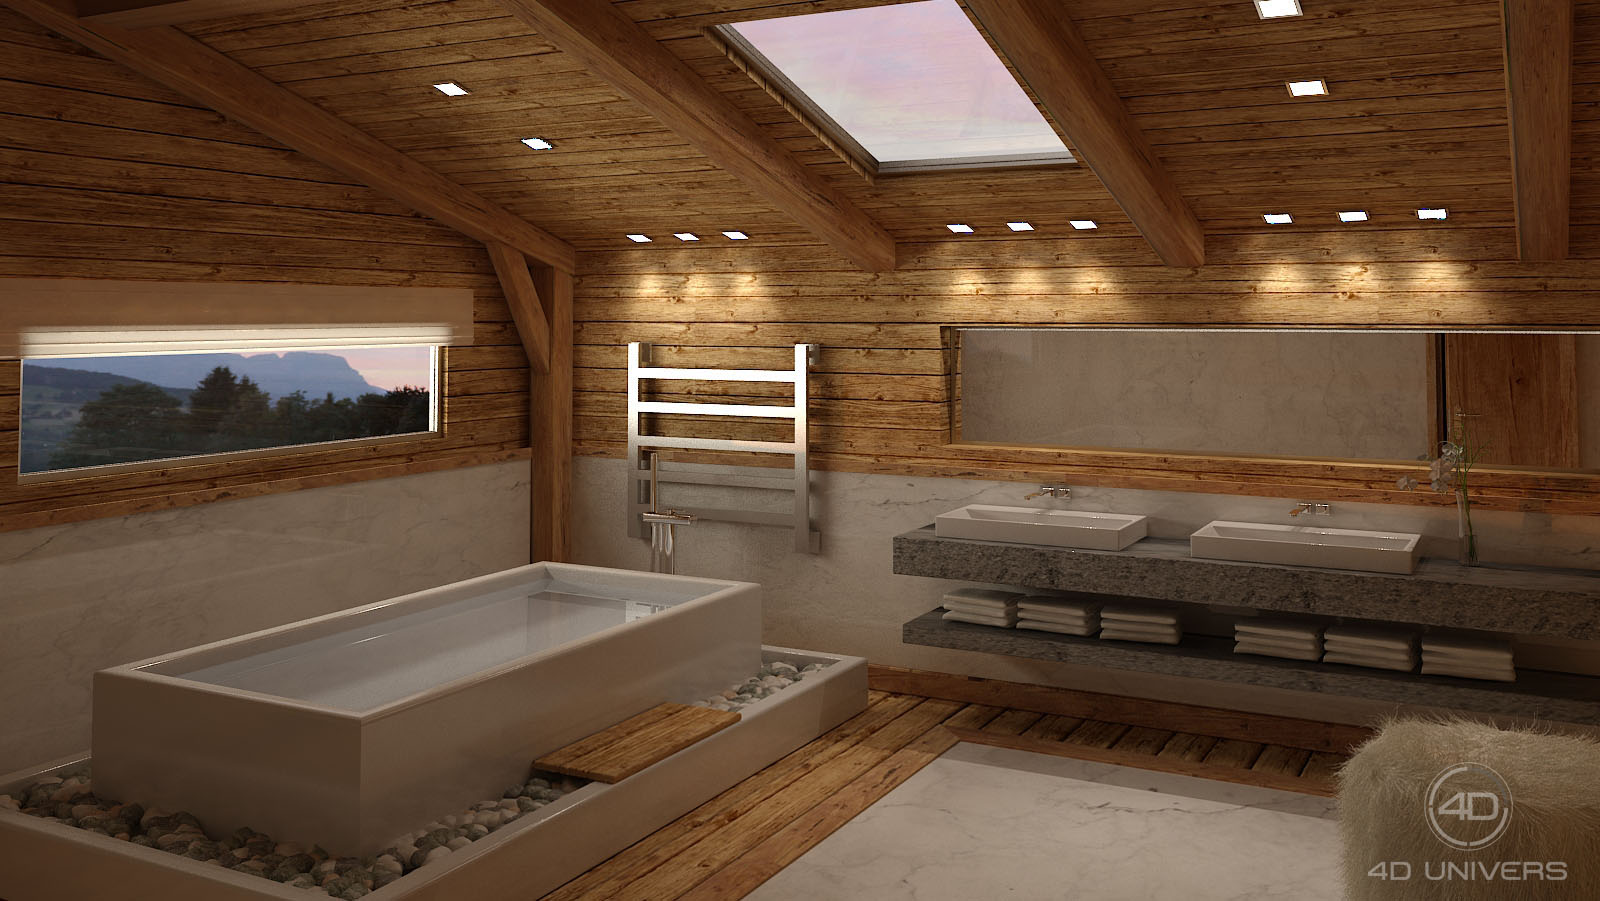 2013 juillet 4d univers studio animation 3d for Architecture salle de bain